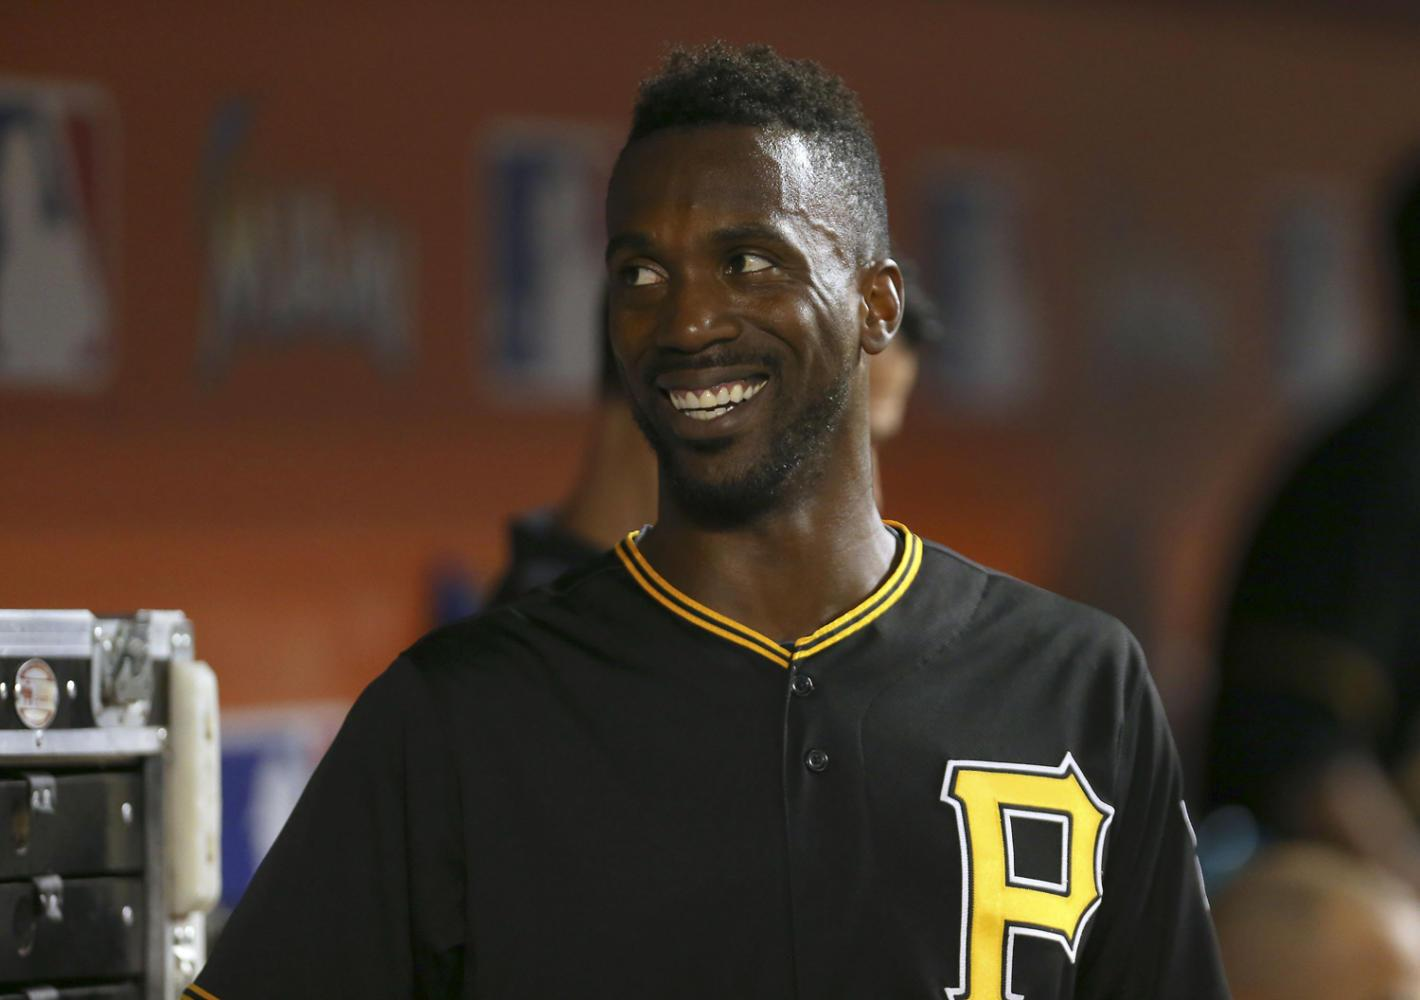 The Pittsburgh Pirates' Andrew McCutchen shown on Aug. 26, 2015, at Marlins Park in Miami. The center fielder was traded to the Giants on Monday. (David Santiago/El Nuevo Herald/TNS)